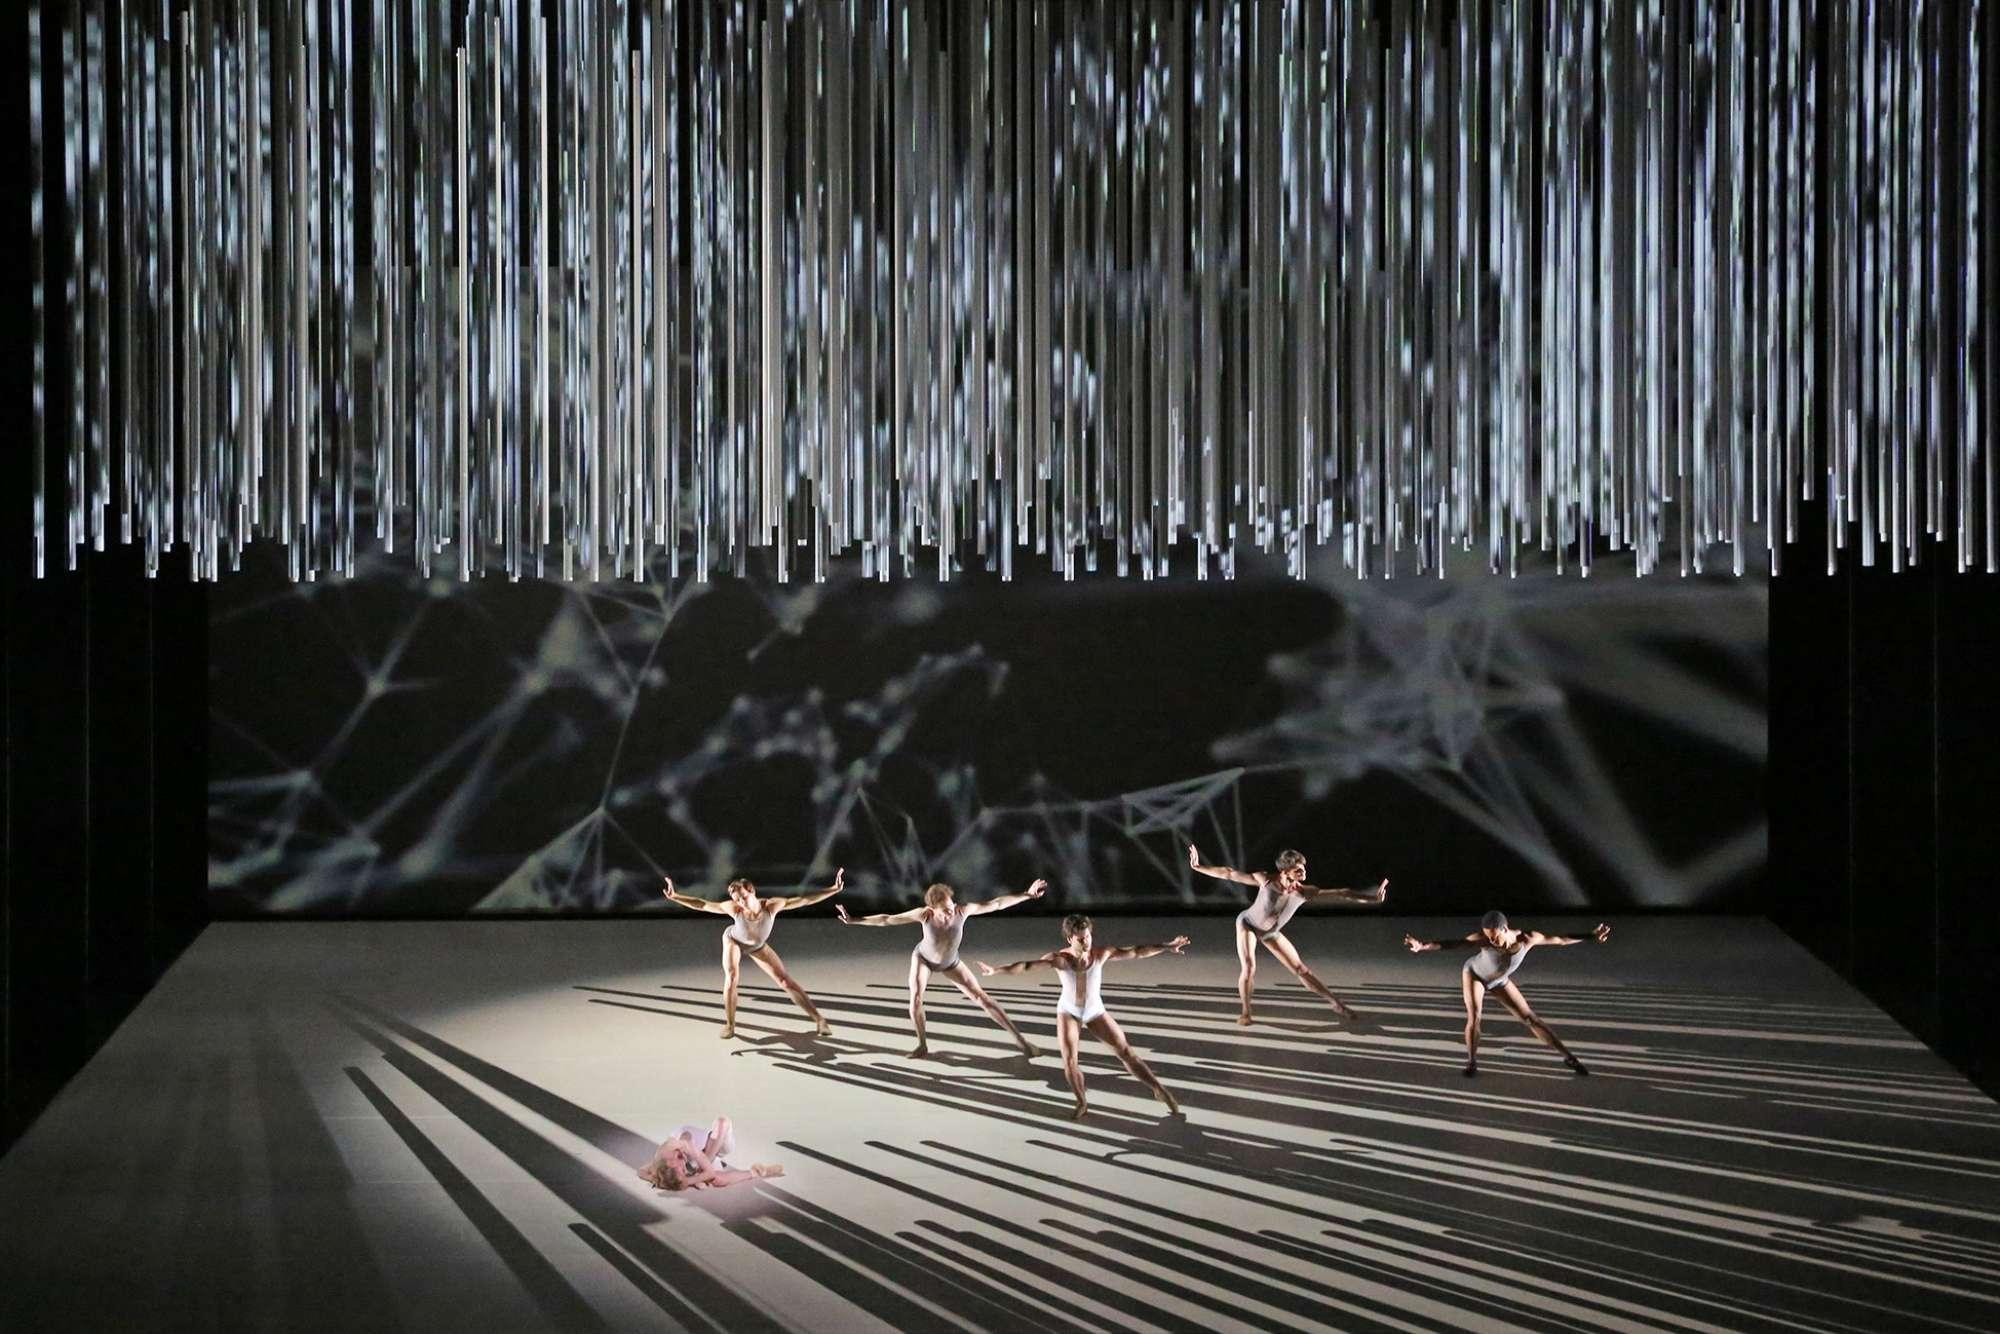 Es Devlin's Connectome set for The Royal Ballet - dancers on stage in light and sharp shadows